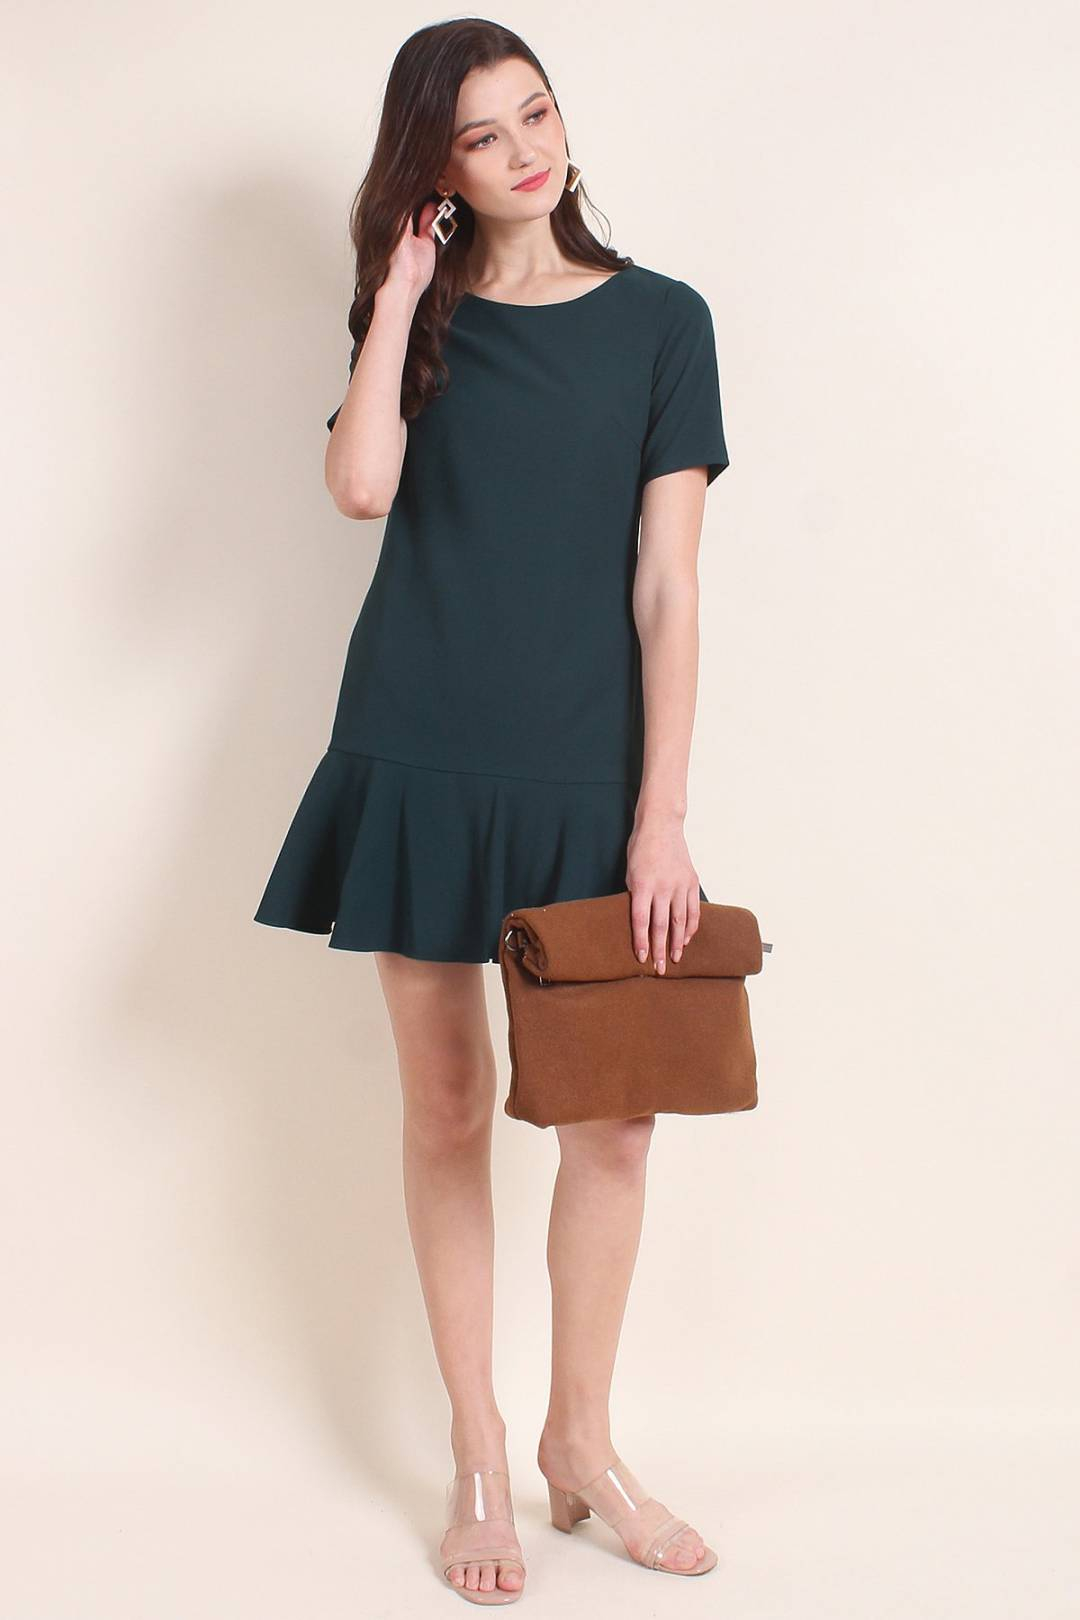 MADEBYNM CAITLIN FLUTED HEM SLEEVES WORK DRESS IN FOREST GREEN [XS/S/M/L/XL]